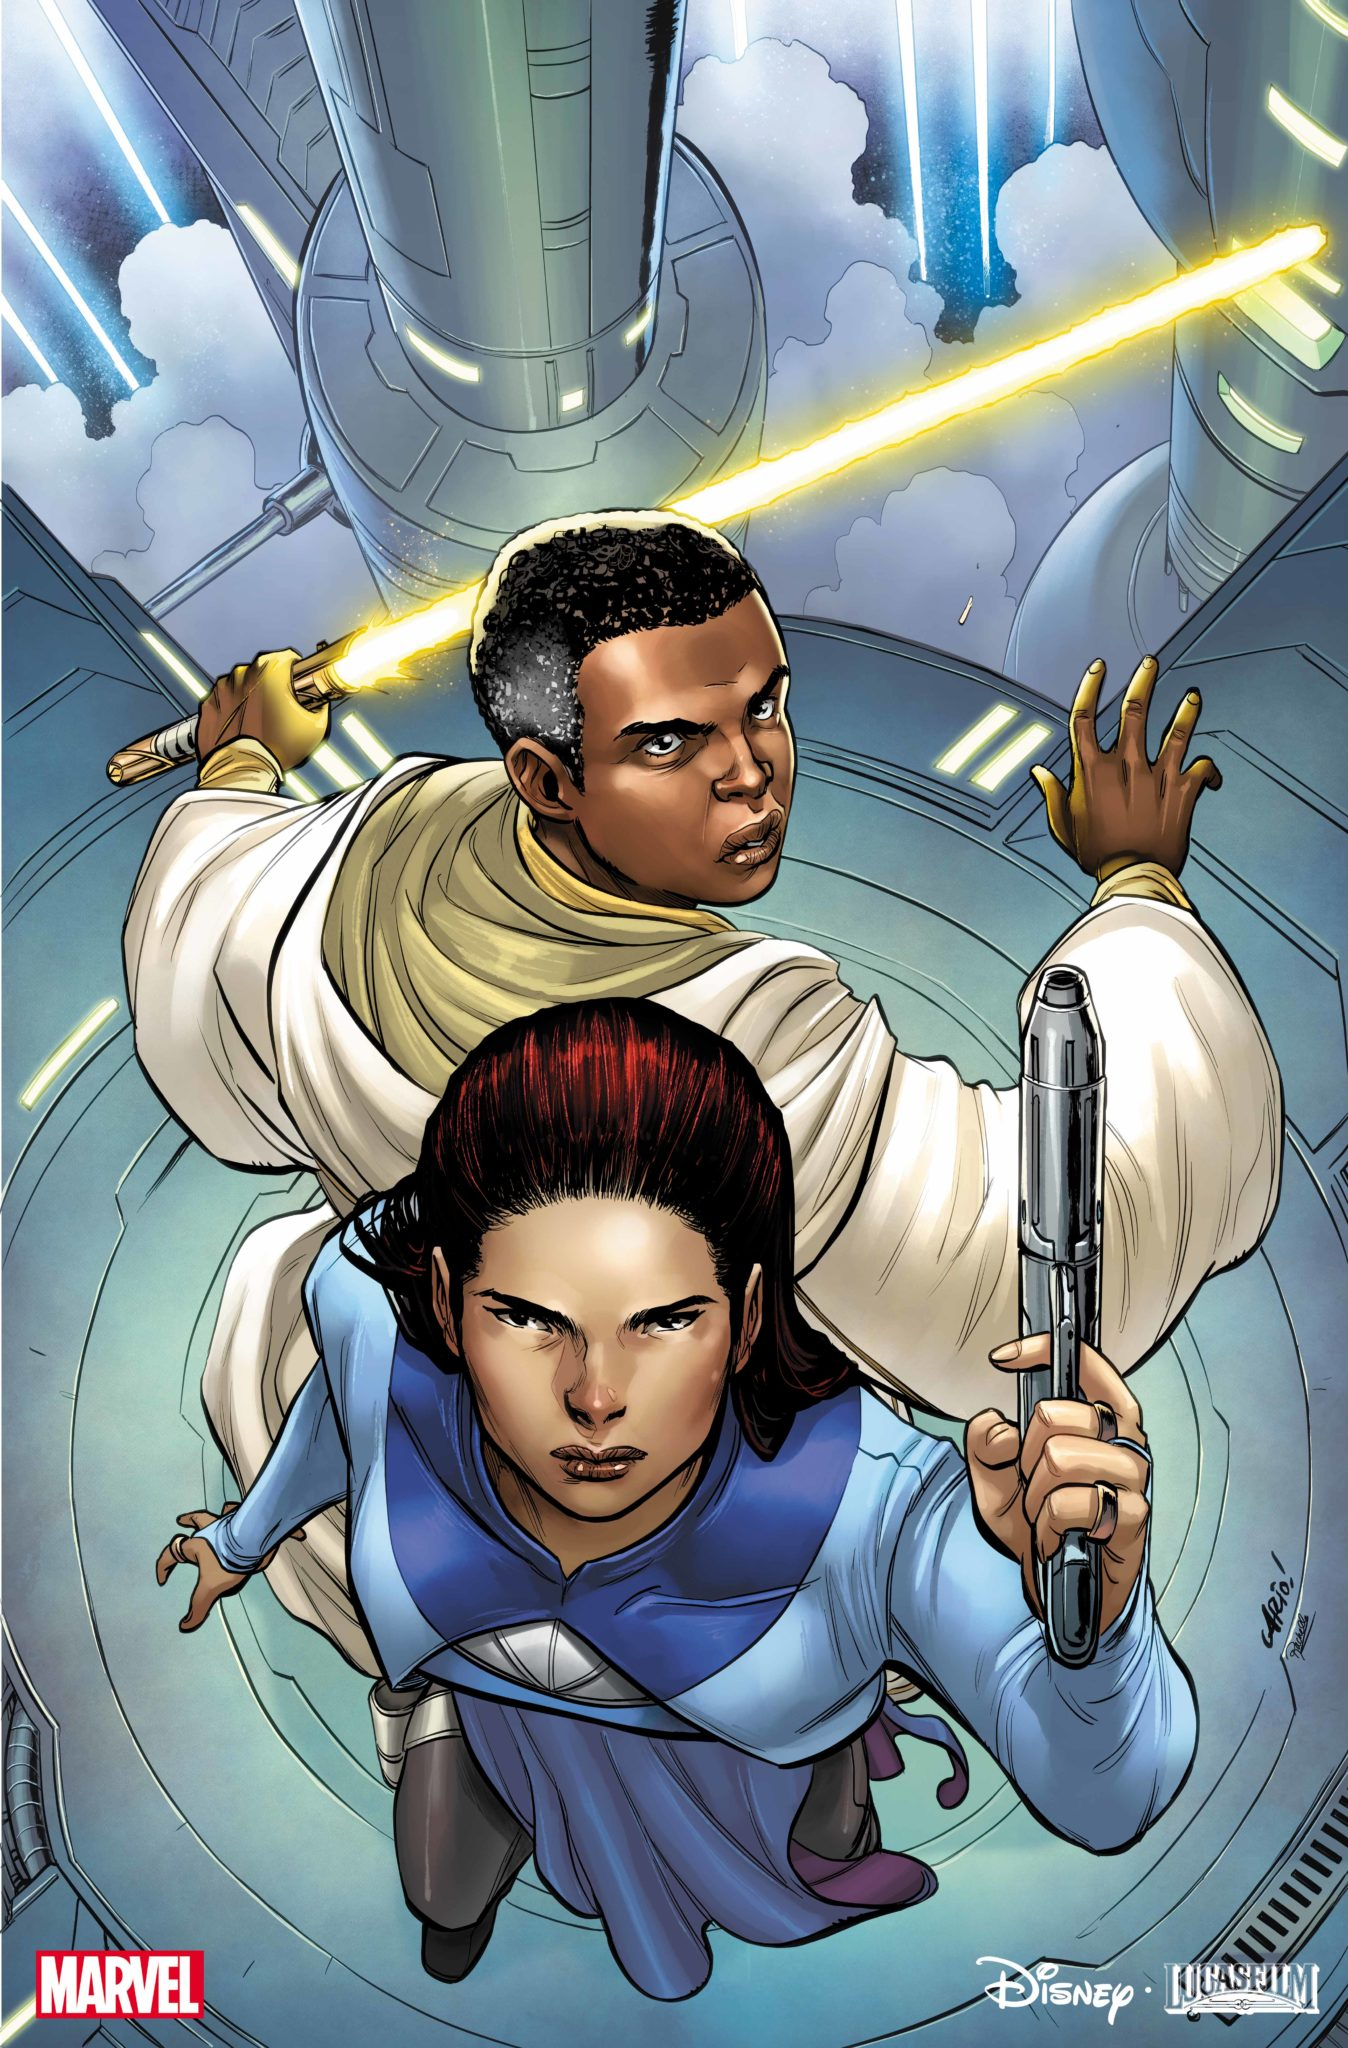 A redheaded woman stands with a gun in the air, back to back with a taller, black man with graying hair and yellow lightsaber